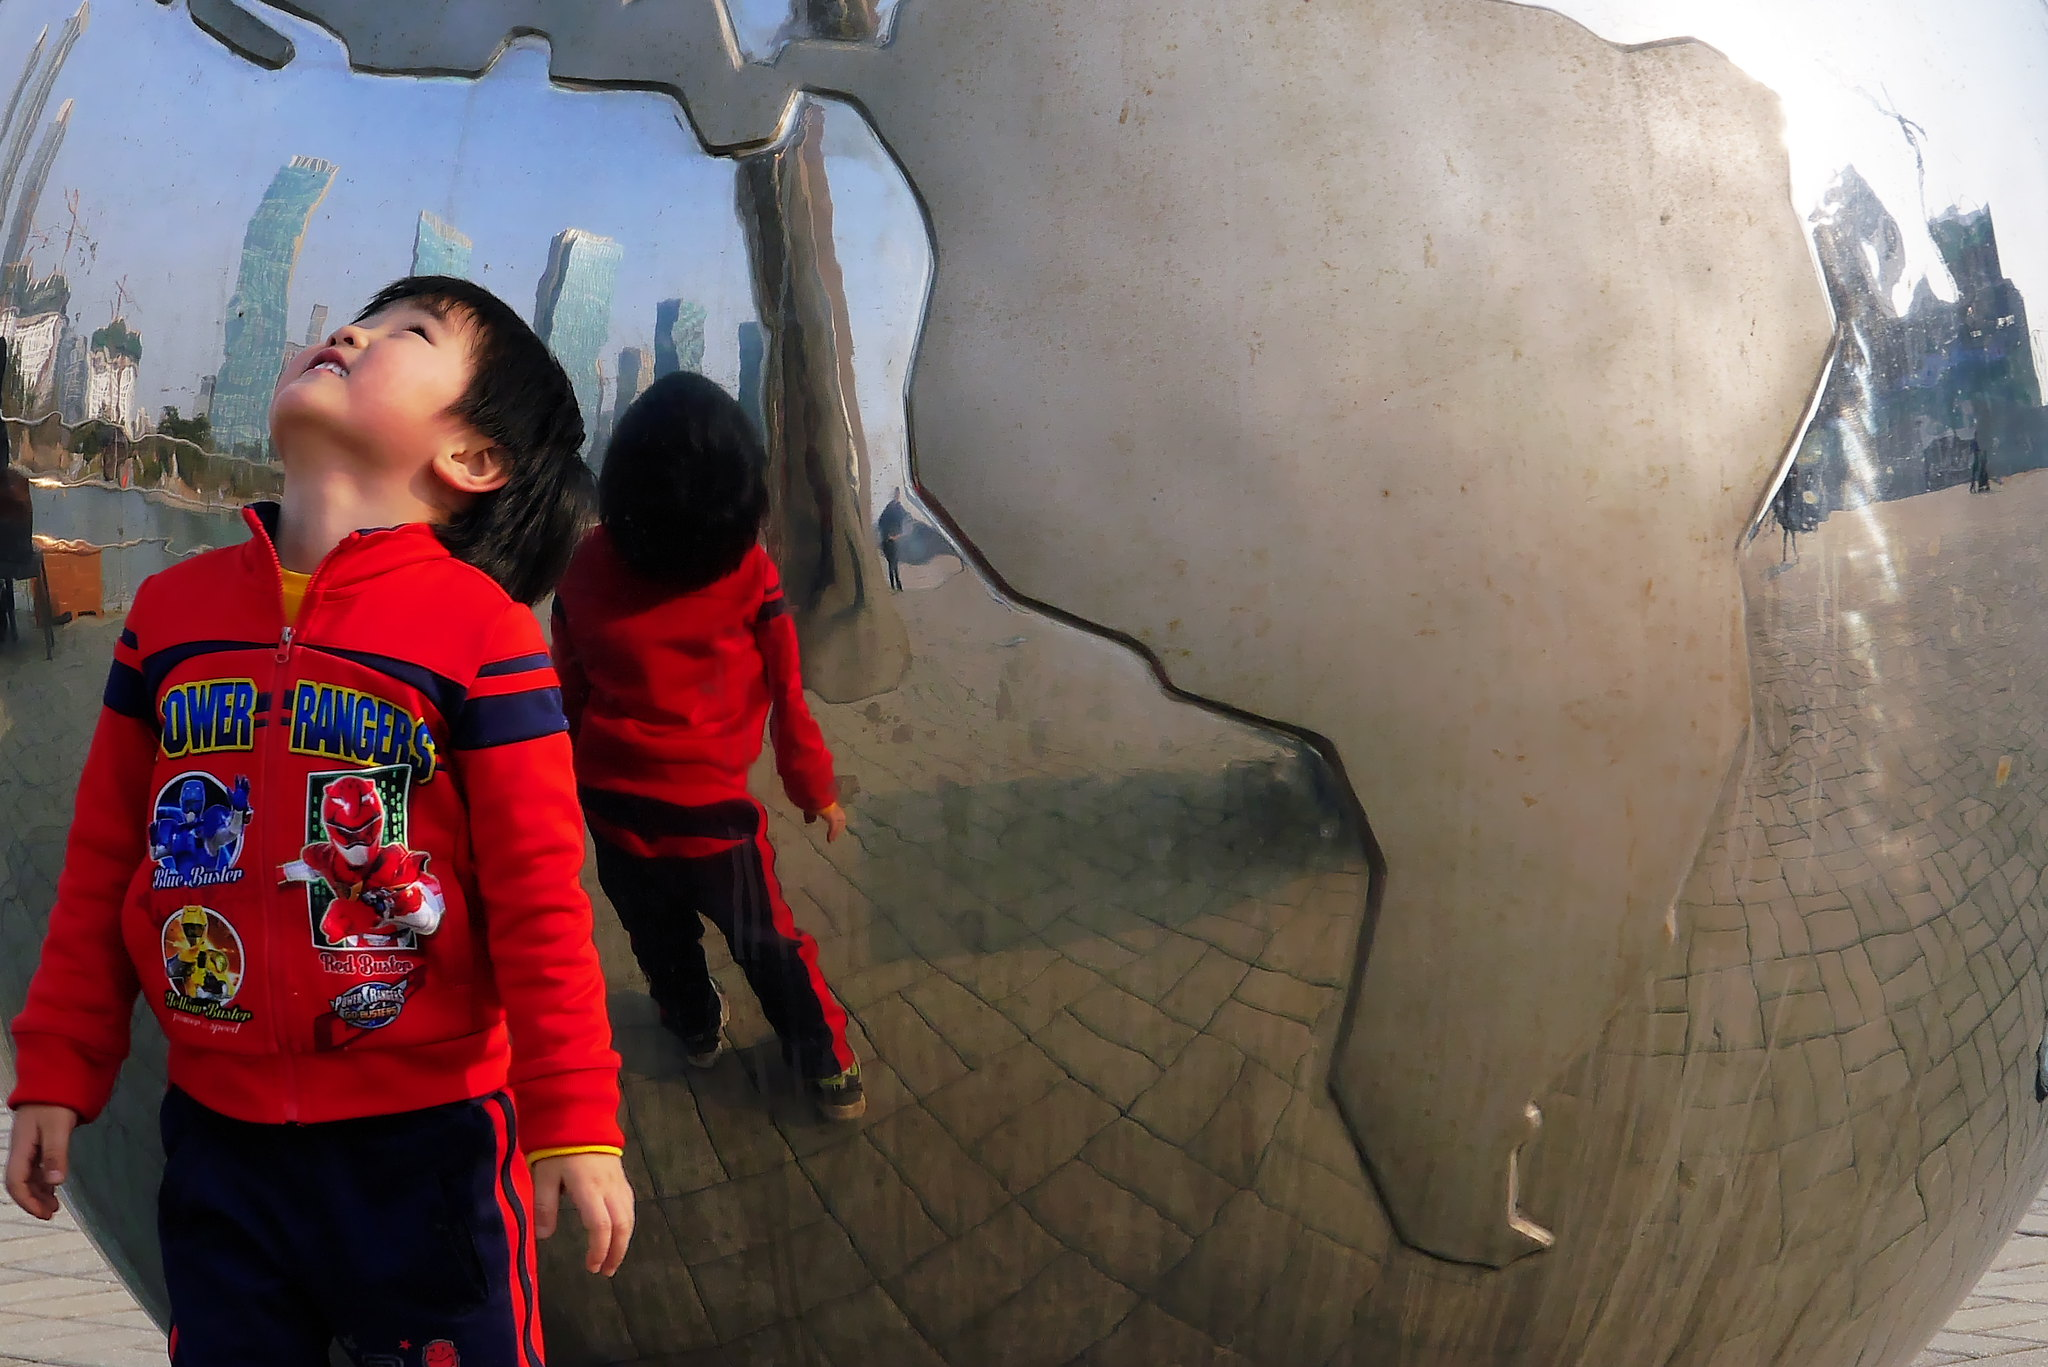 <p>A child looks up at a globe in Incheon, South Korea. Photo by travel oriented/Flickr.</p>